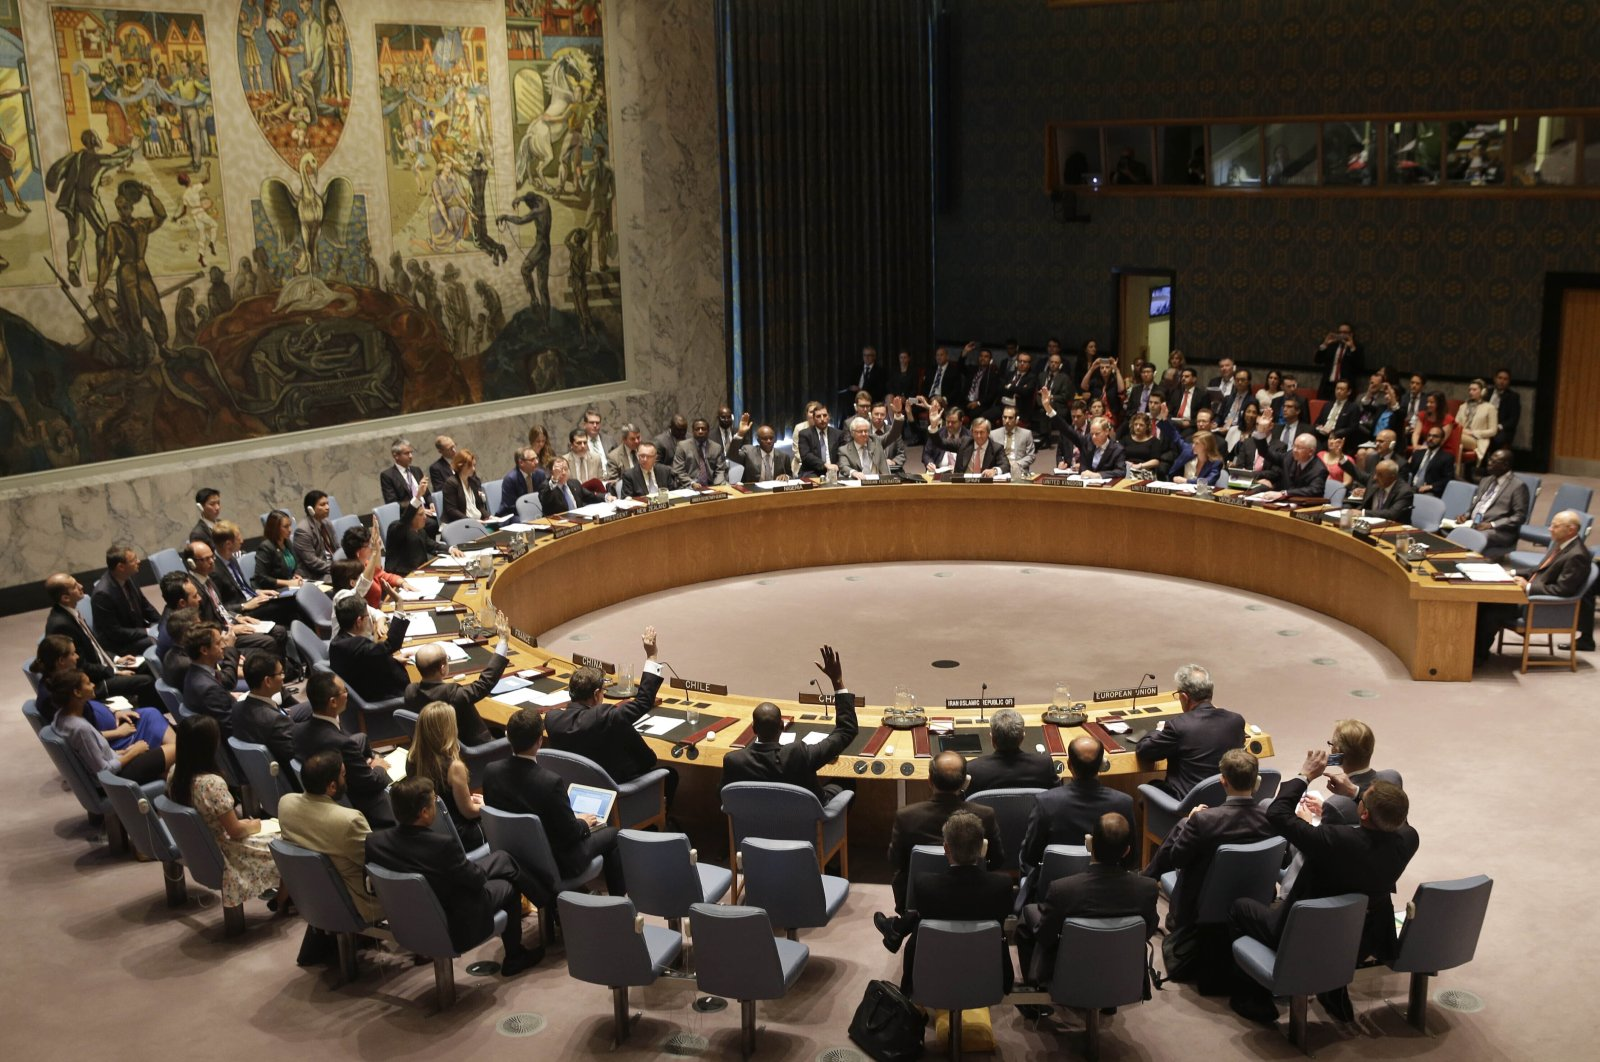 Members of the Security Council vote at United Nations headquarters on the landmark nuclear deal between Iran and six world powers, New York City, New York, U.S., July 20, 2015. (AP Photo)